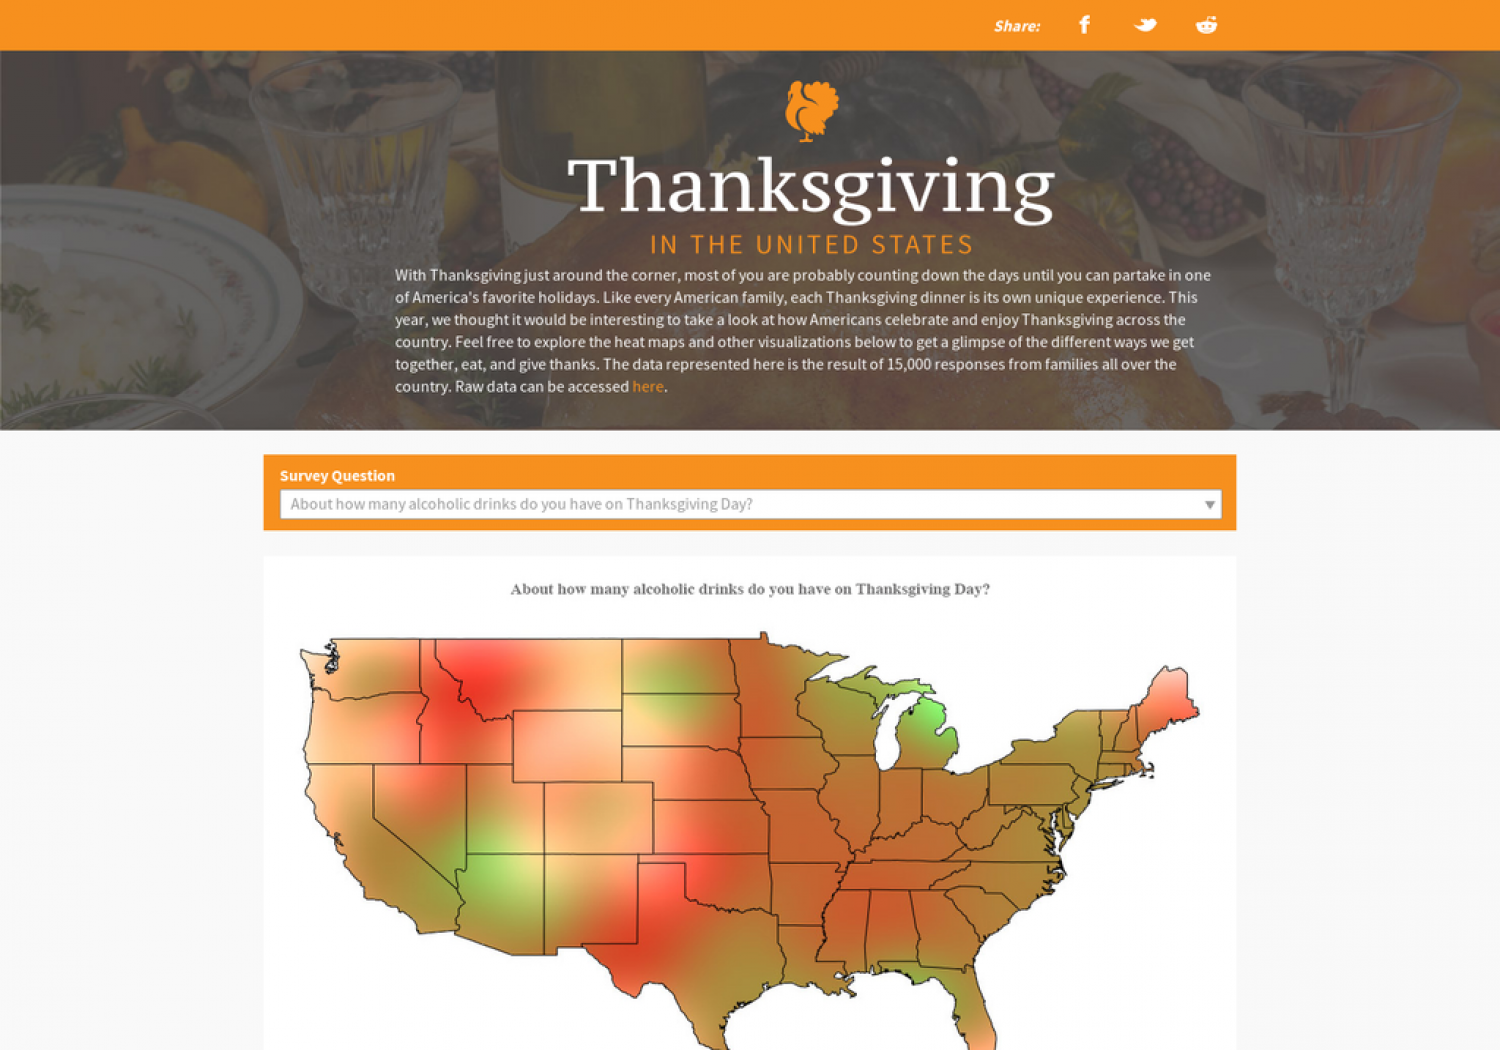 Thanksgiving in the United States Infographic